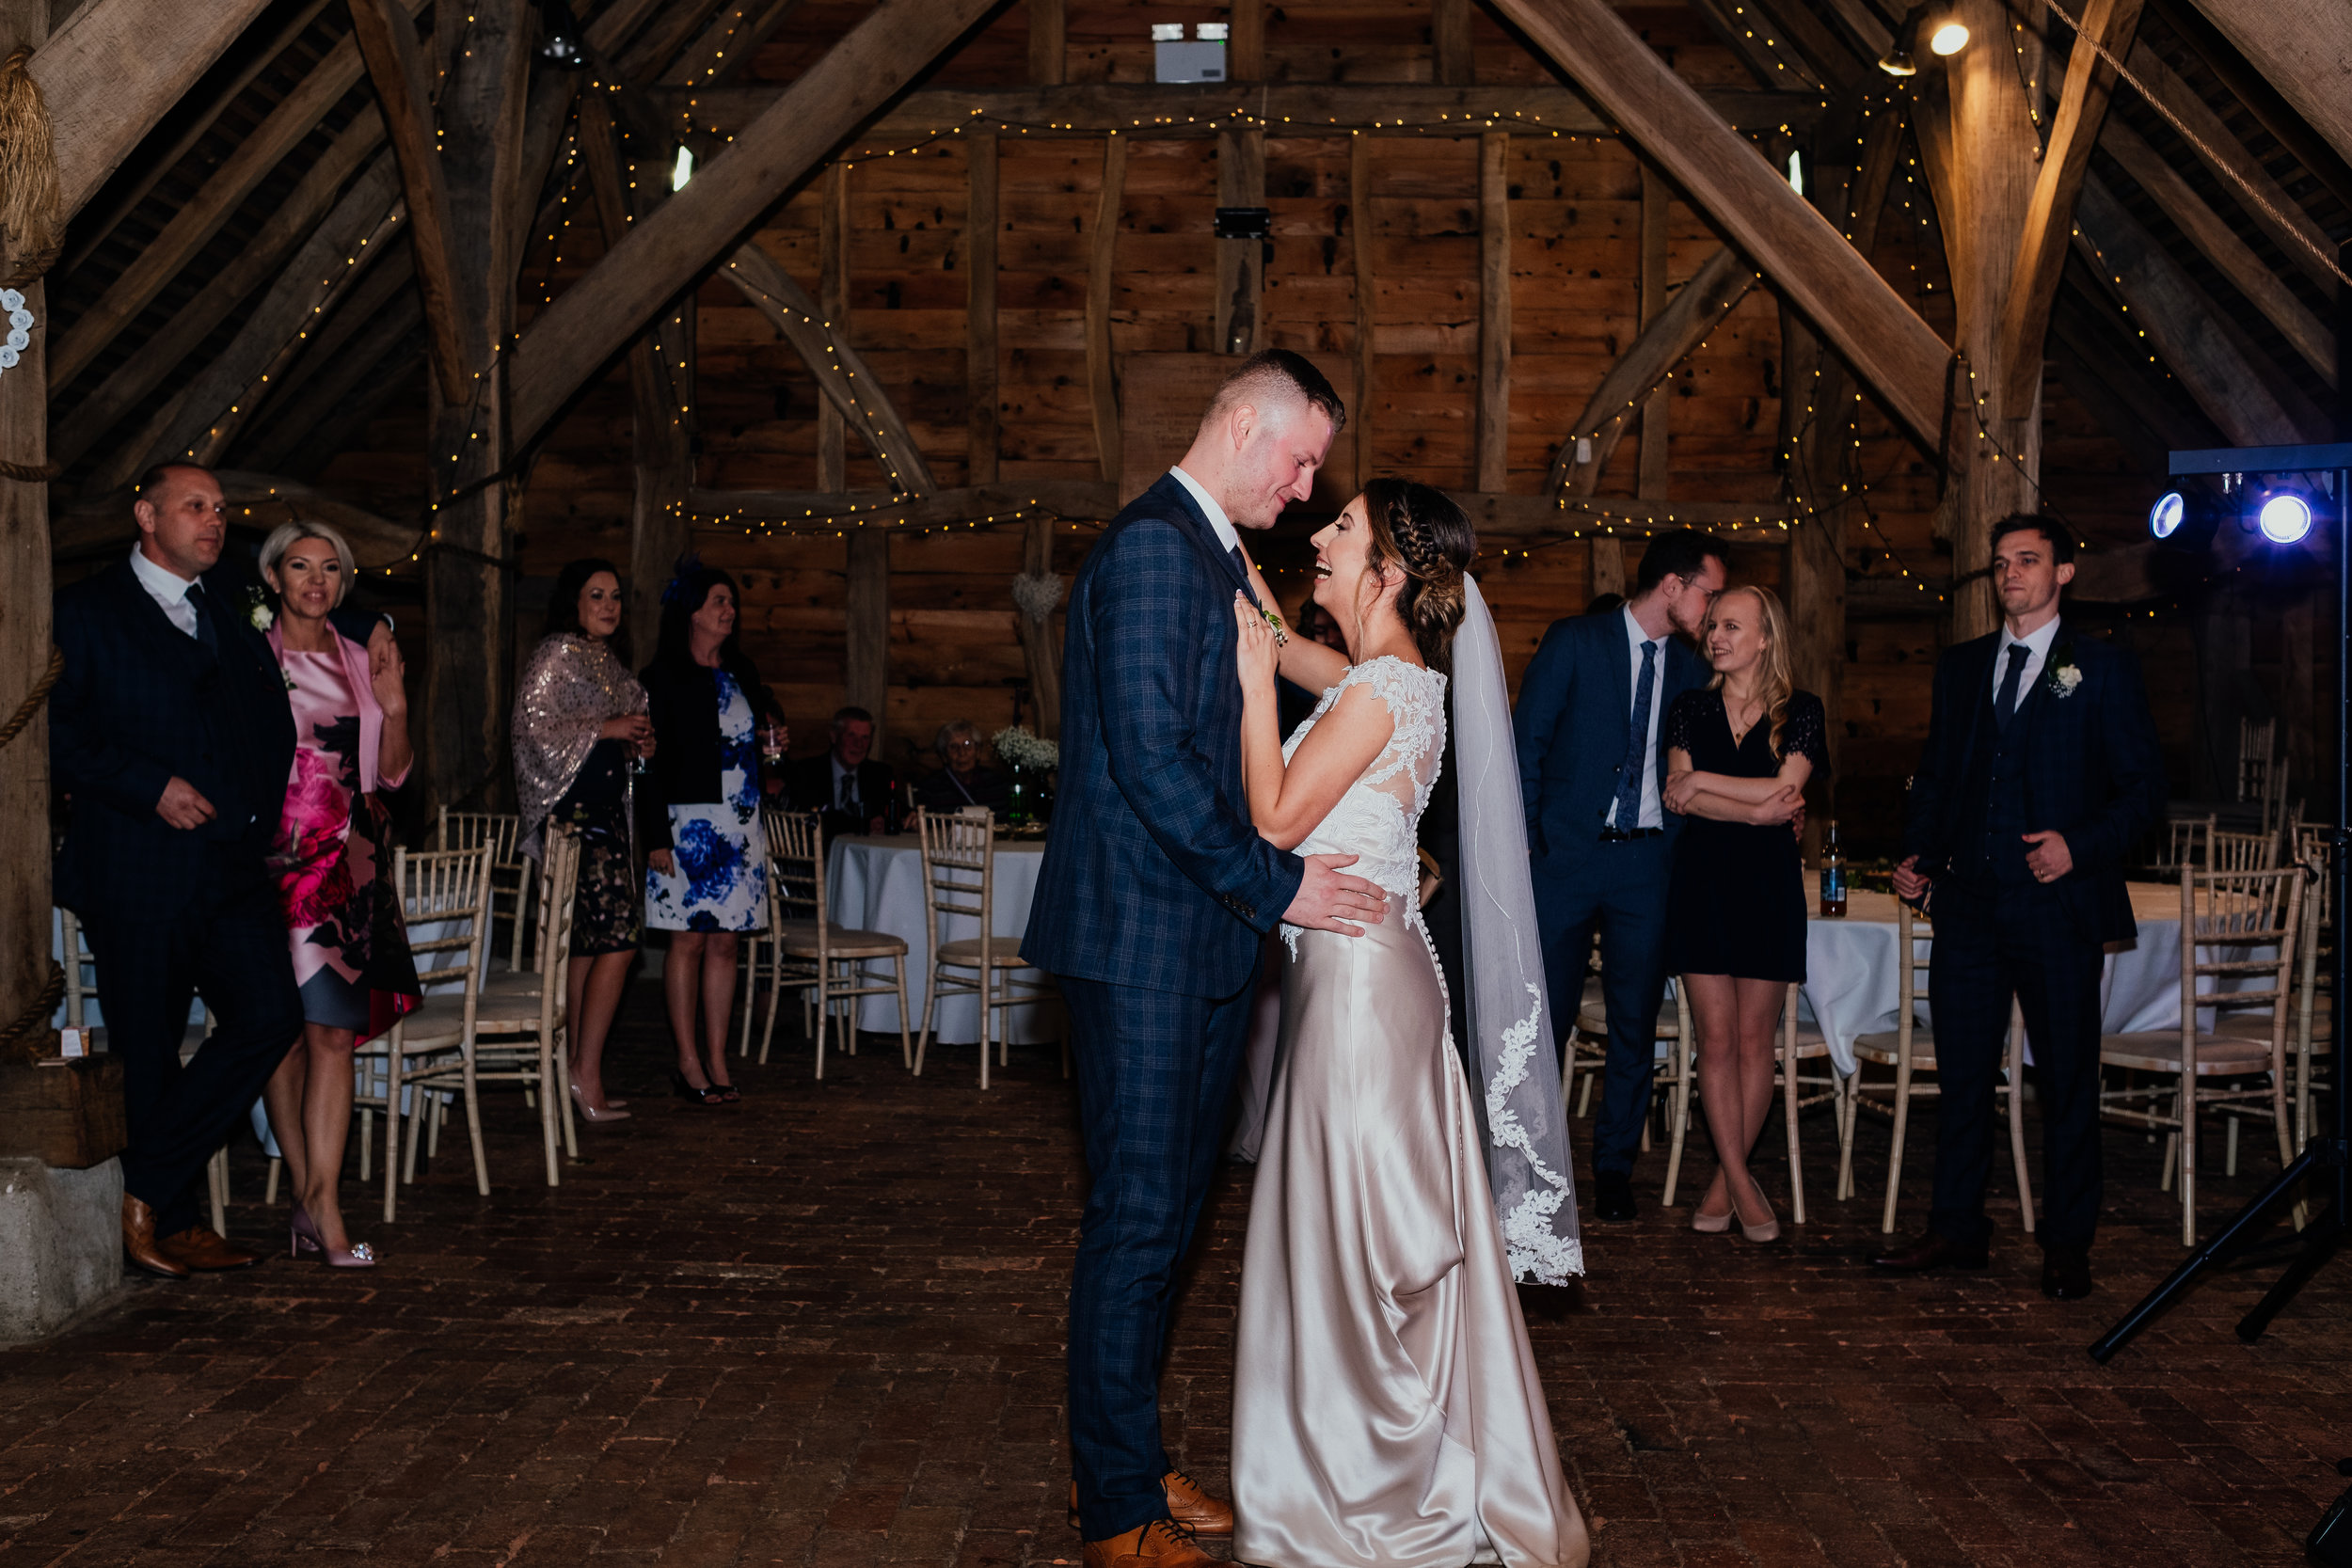 Bride and Groom first dance at Gildings Barn wedding